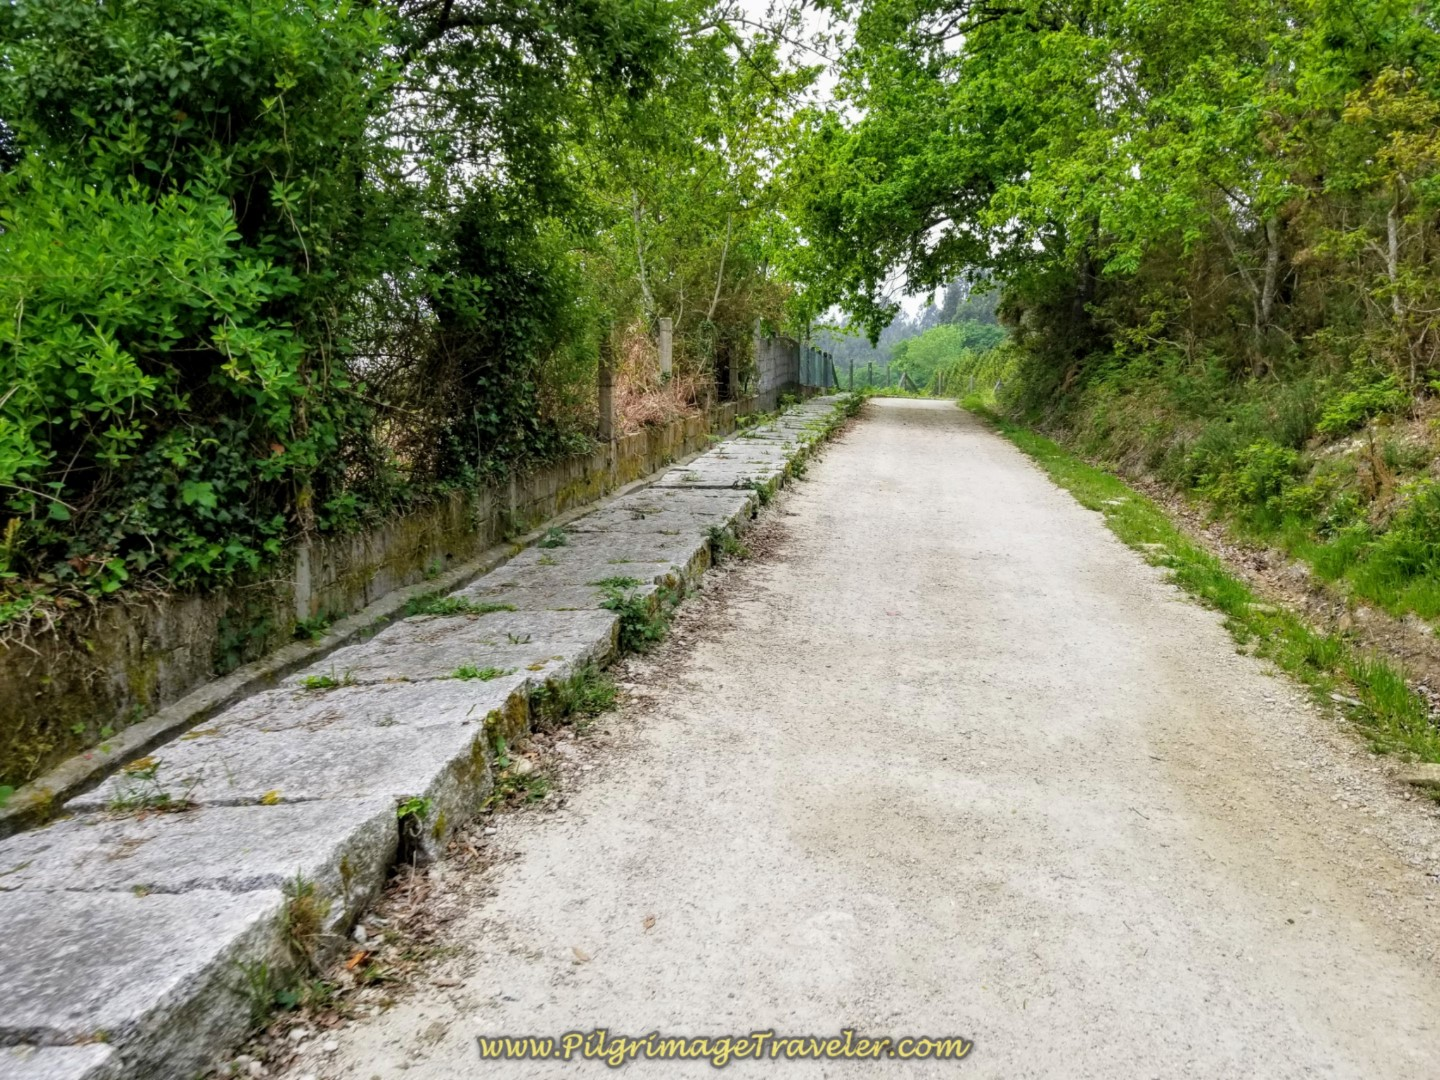 A Section of Road with Pavers to Walk Upon on day one of the Camino Finisterre